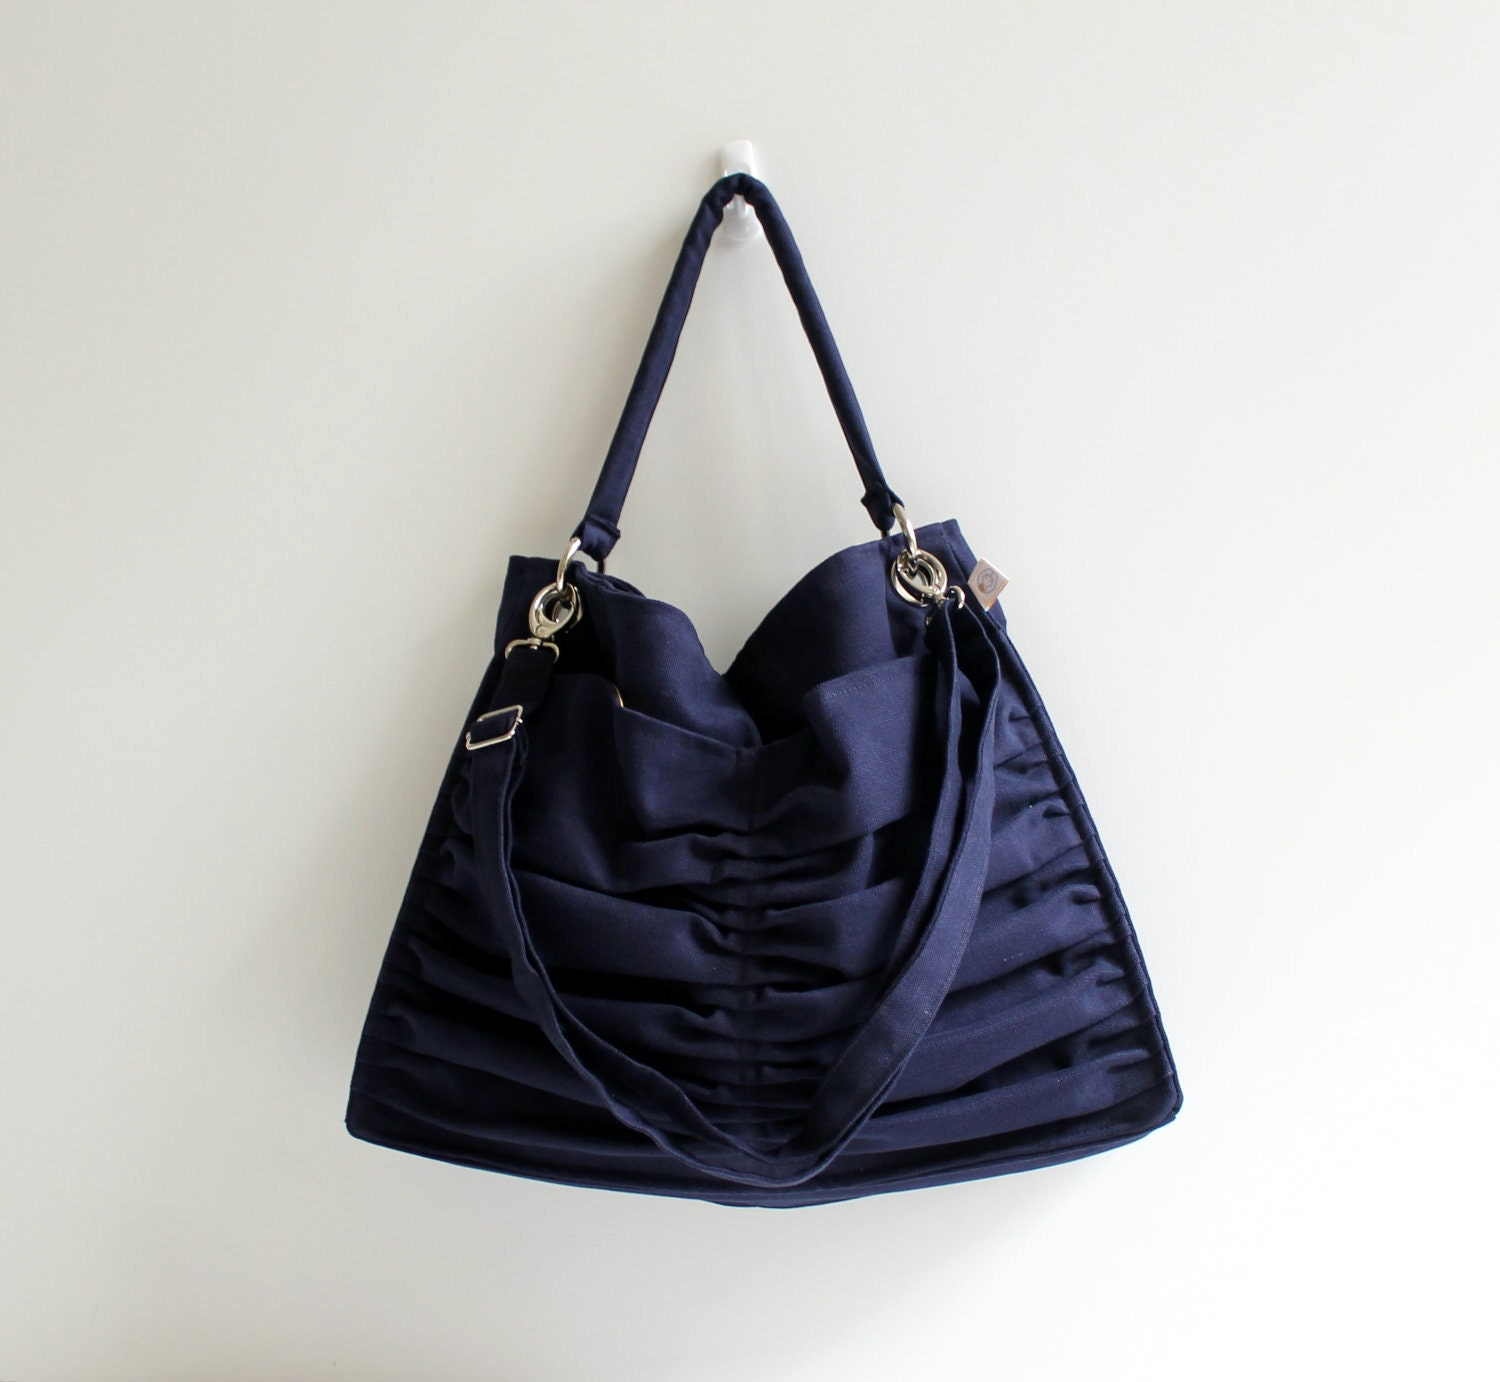 Fashion / Euphoria in Dark Midnight Blue / Outside Pockets / Pleated Shoulder Bag / Messenger Travel Bag / Large / Cross Body / Choose Color - bayanhippo